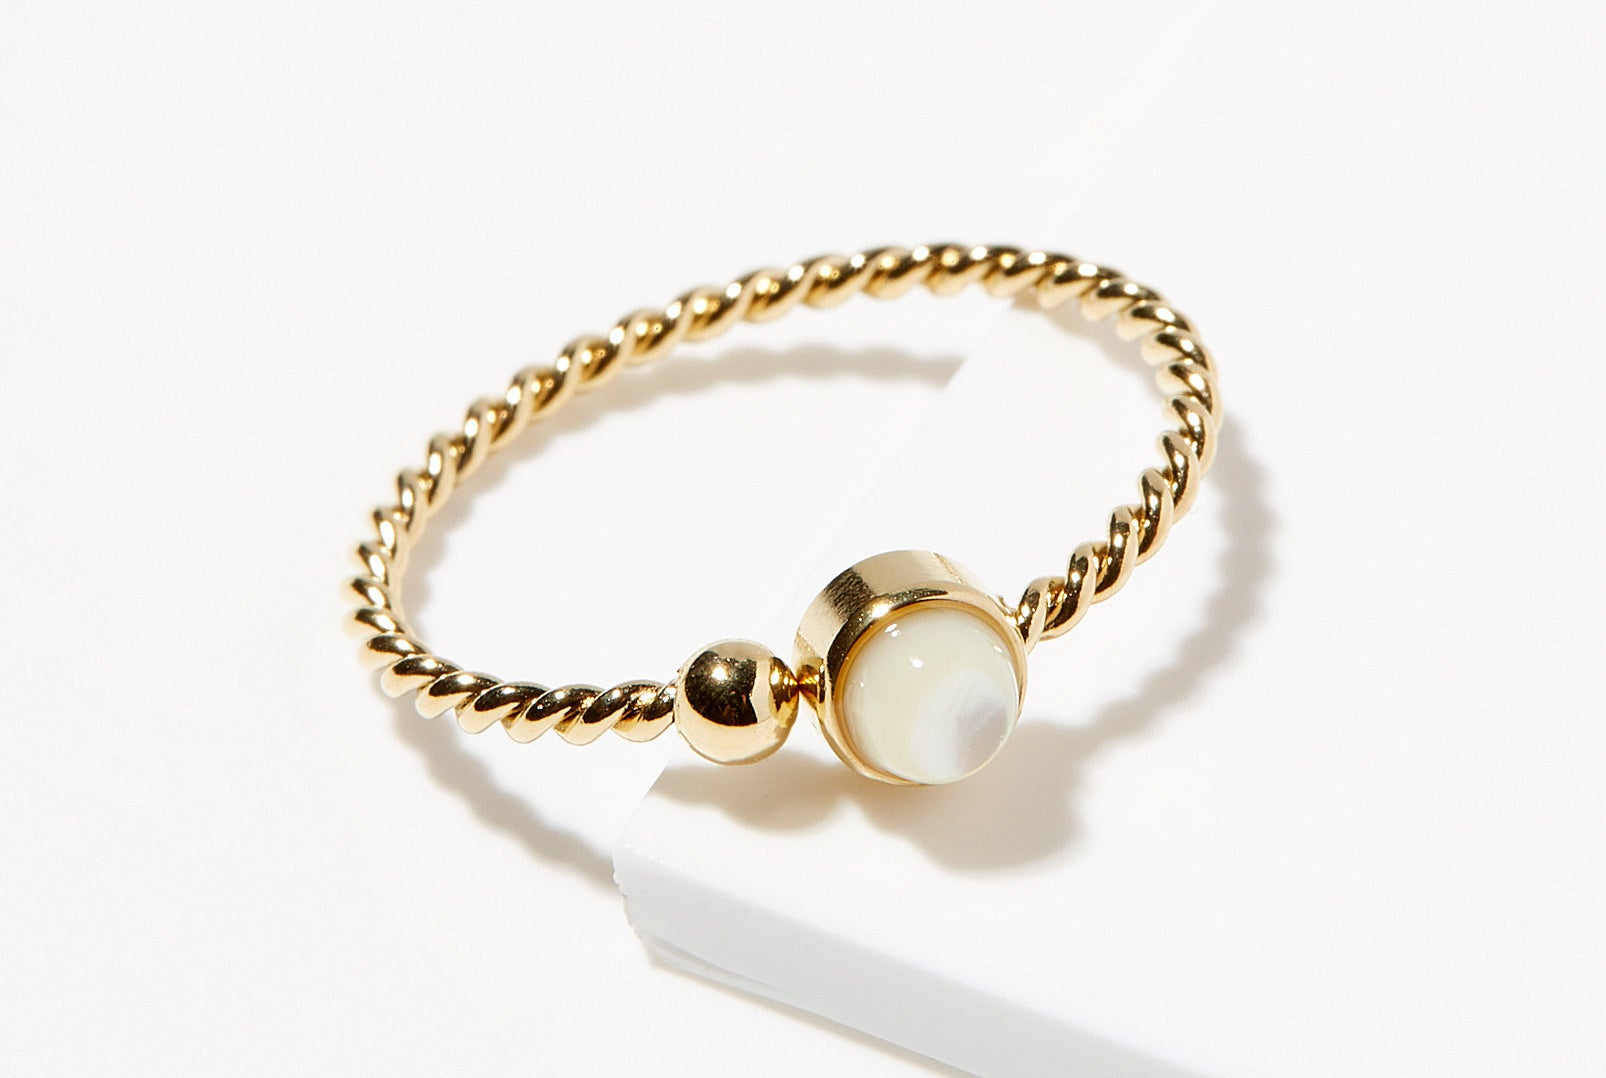 A ring with a pearl stone